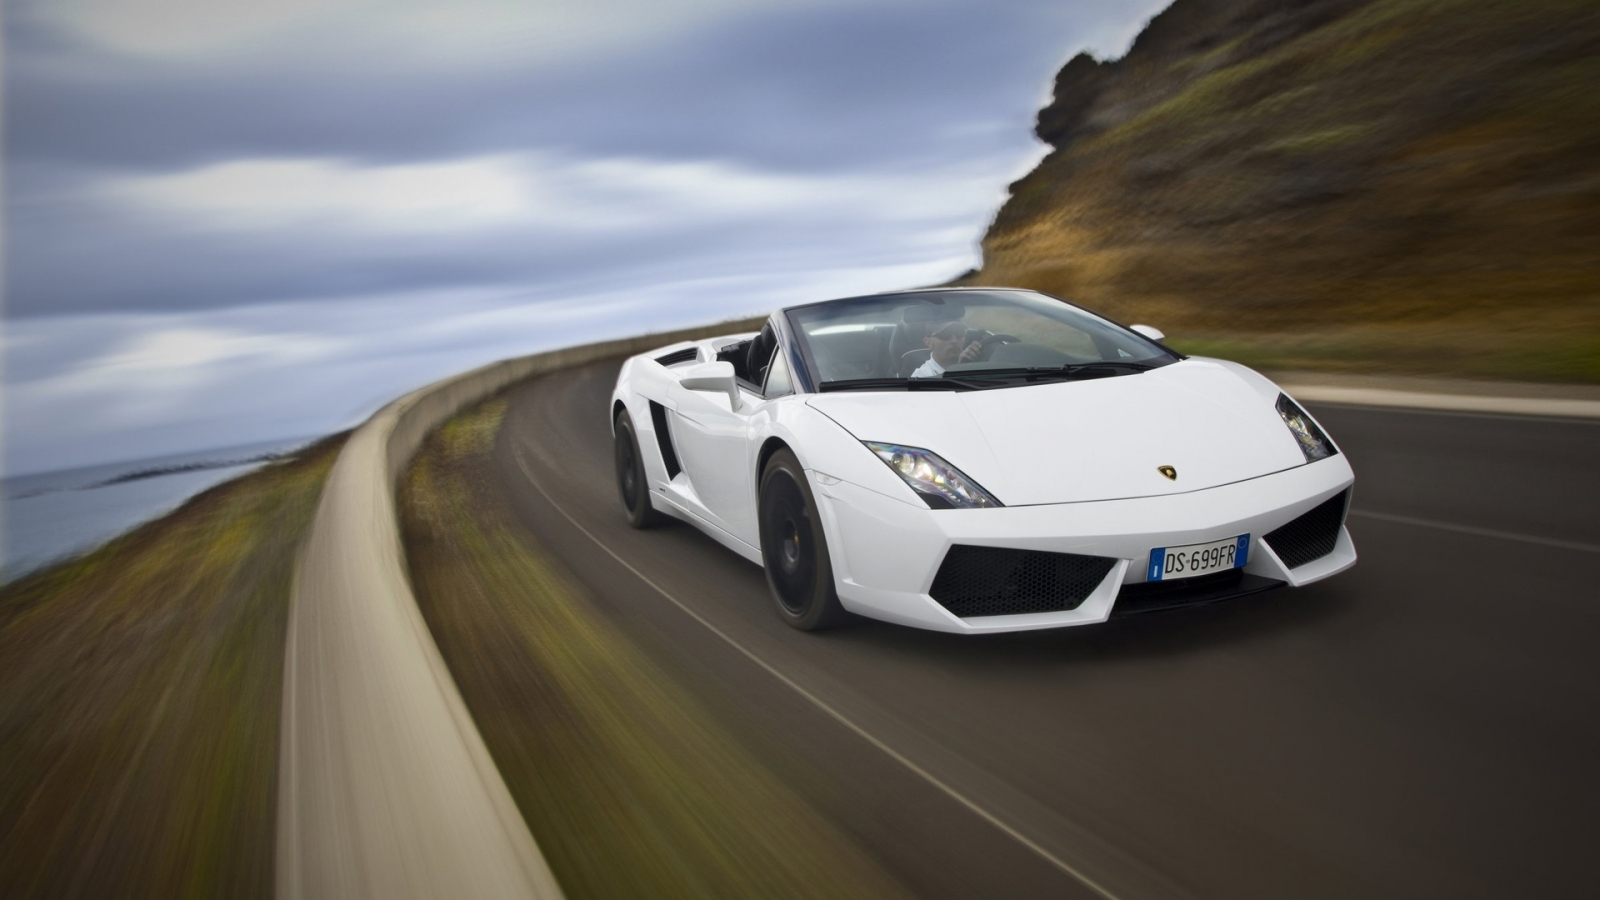 Lamborghini Gallardo LP560 Speed 2010 for 1600 x 900 HDTV resolution